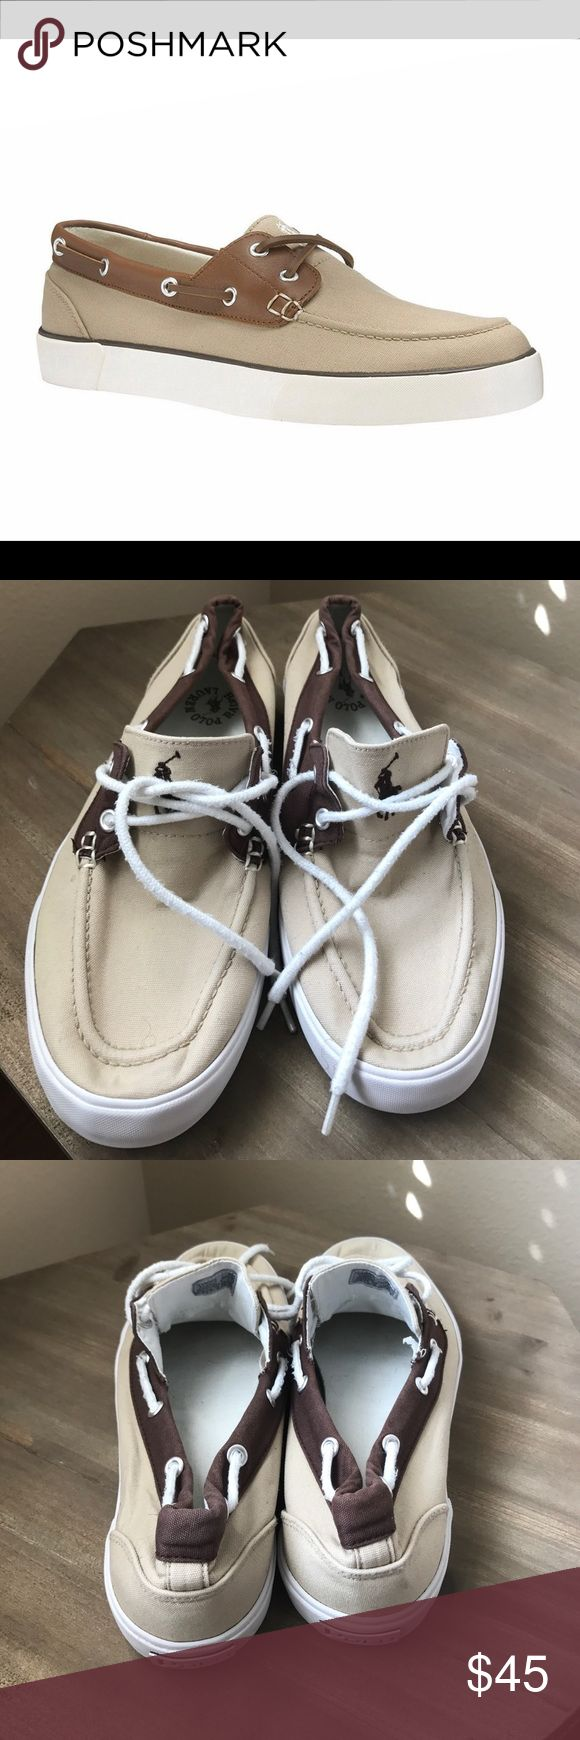 Men Polo Canvas Grab these nice Ralph Lauren Polo canvas for men before they are gone. View pictures closely. Gently worn. Used in good condition. Name Brand, Size8 1/2 Polo by Ralph Lauren Shoes Boat Shoes